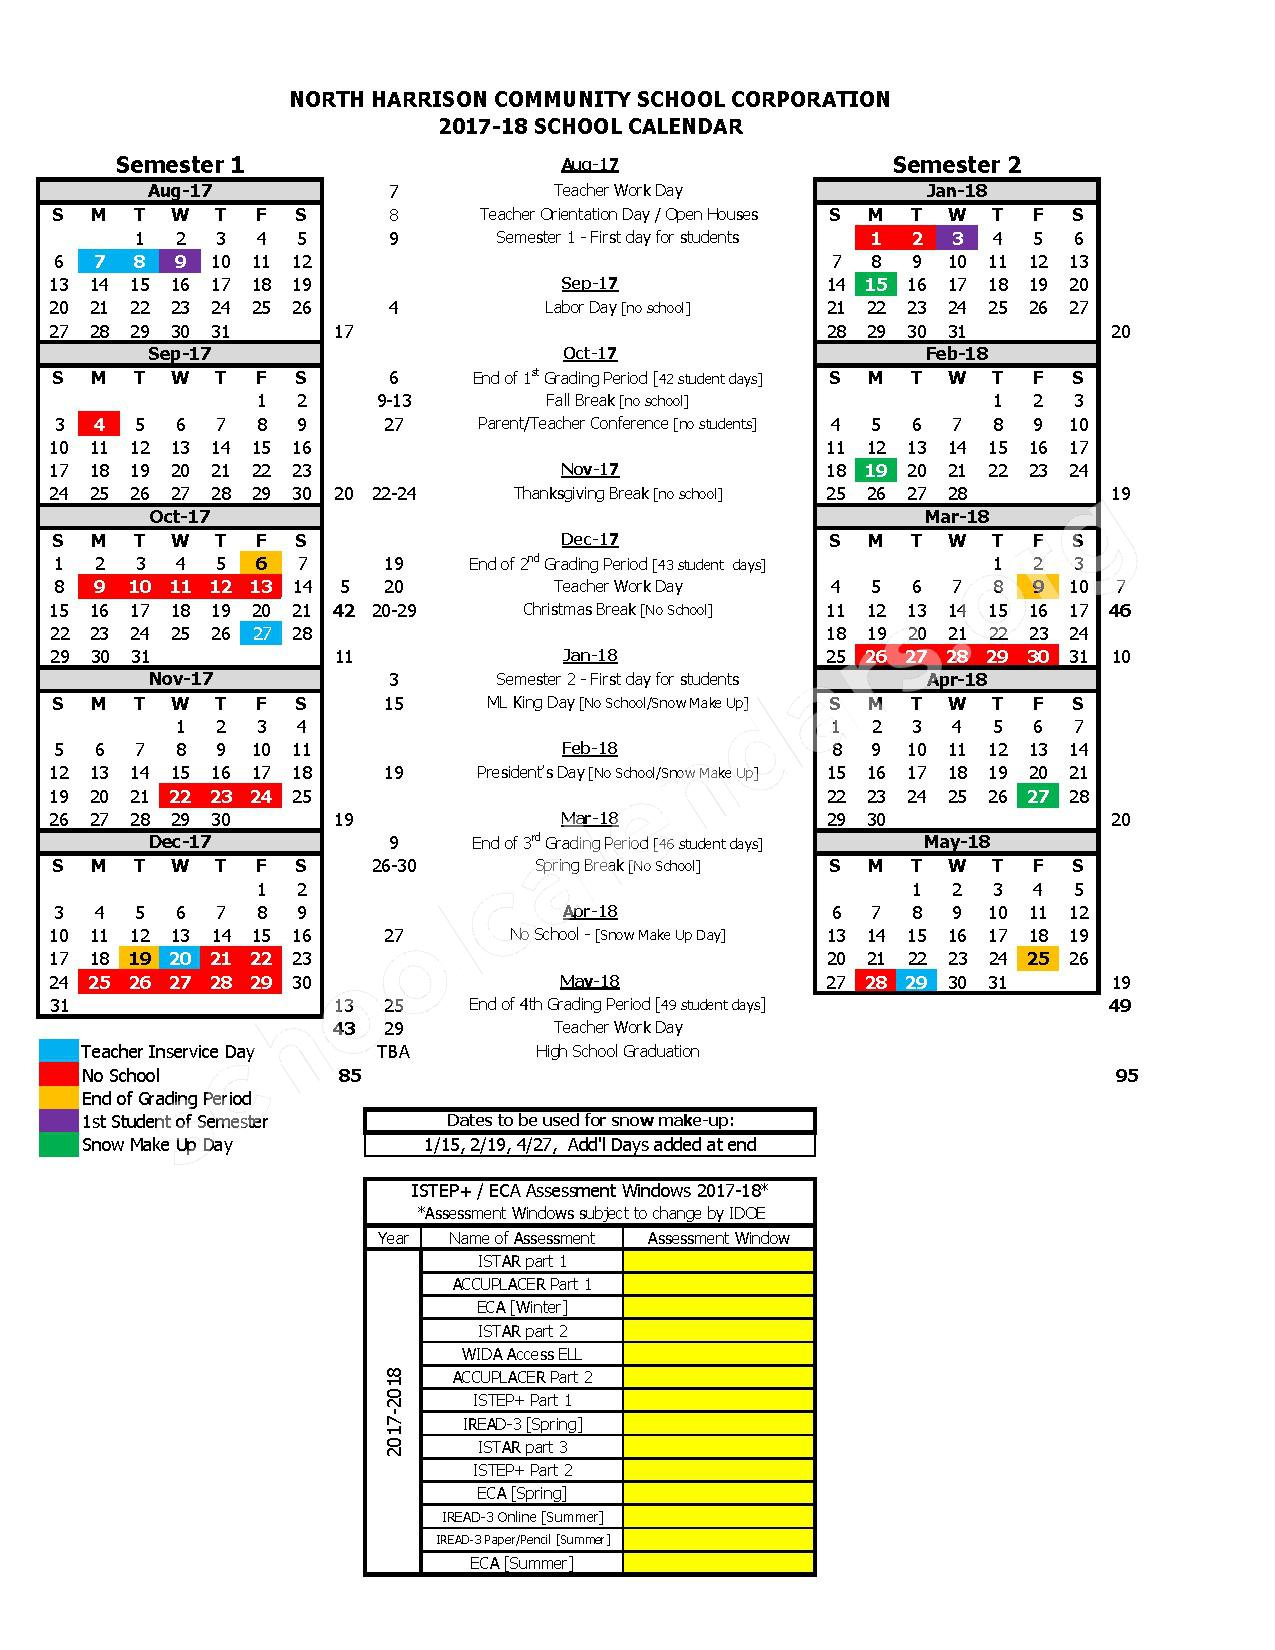 2017 - 2018 School Calendar – North Harrison Community School Corporation – page 1